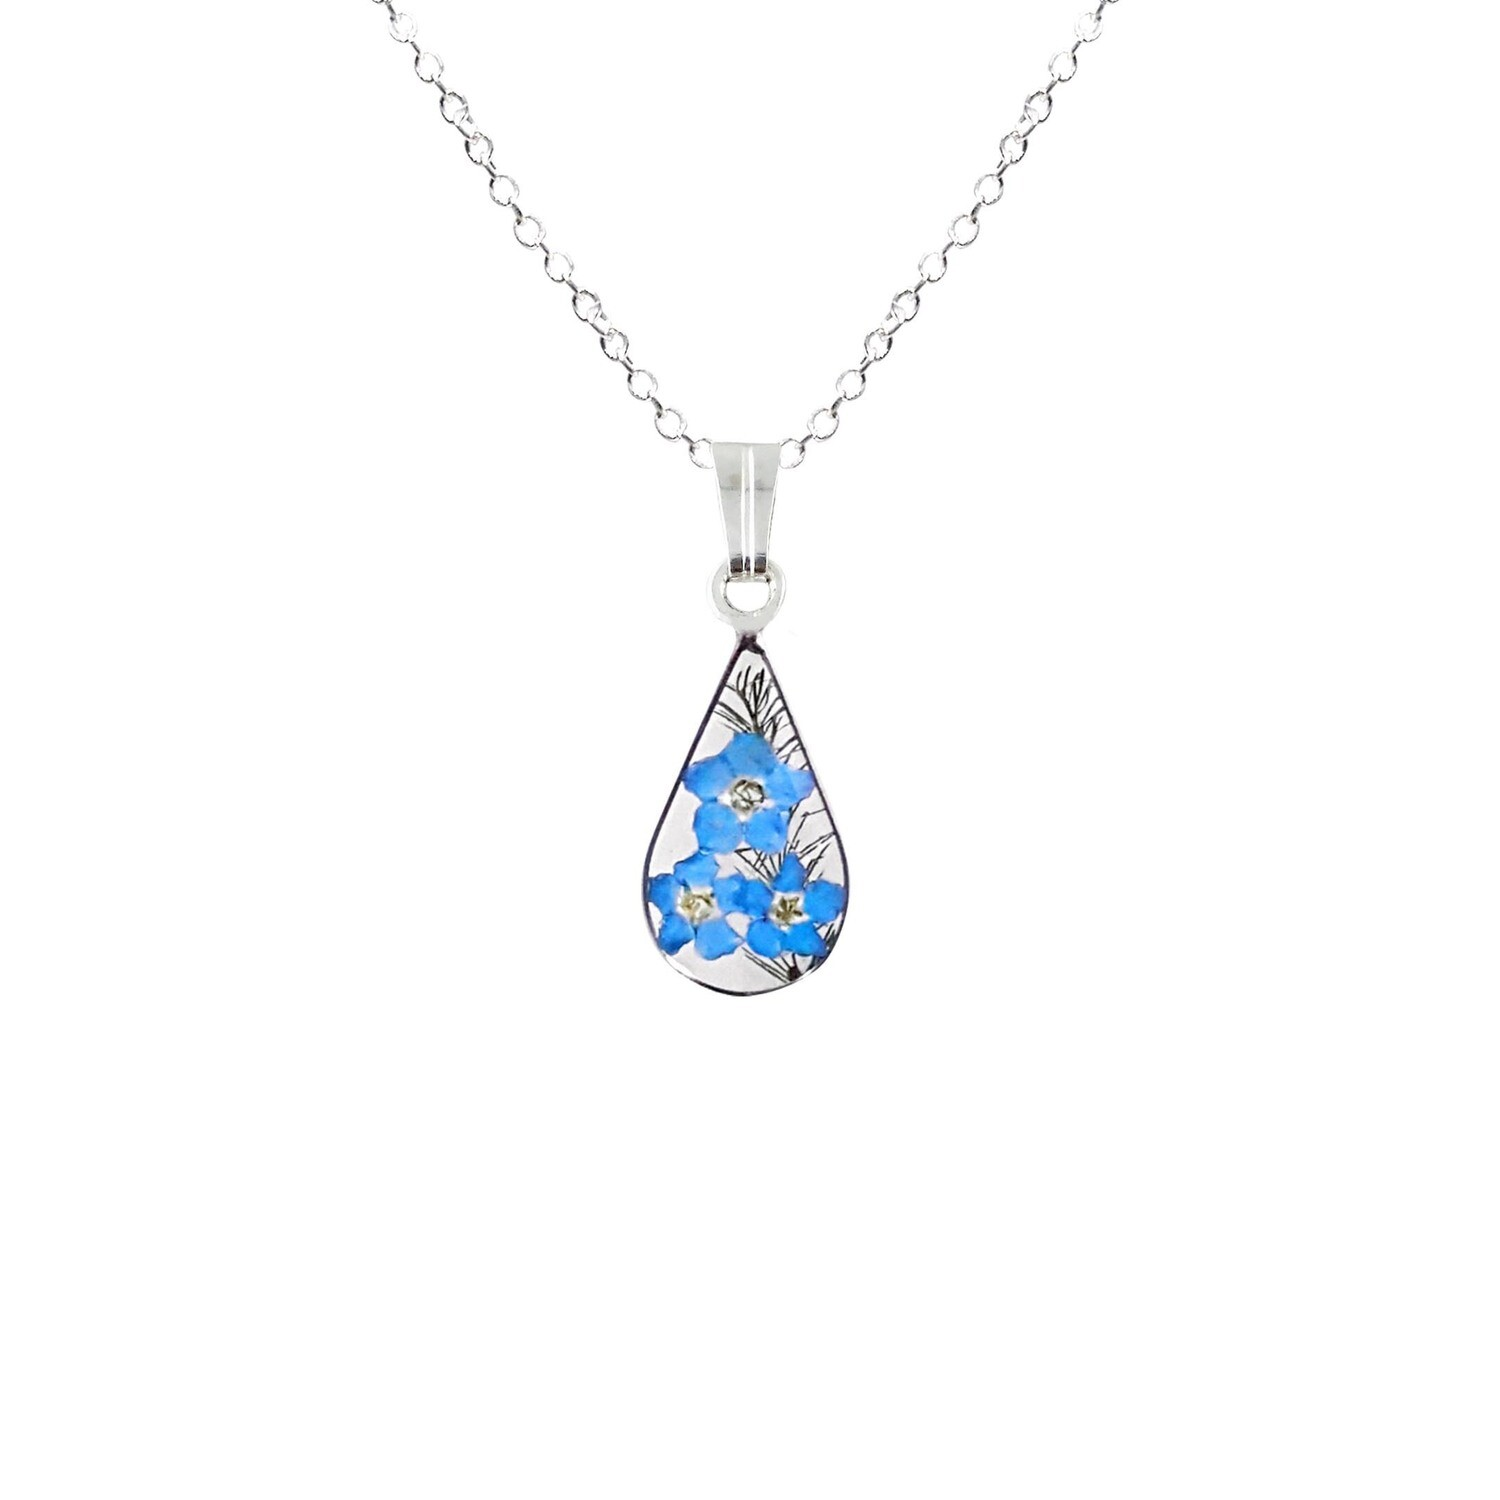 Forget-Me-Not Necklace, Small Teardrop, Transparent